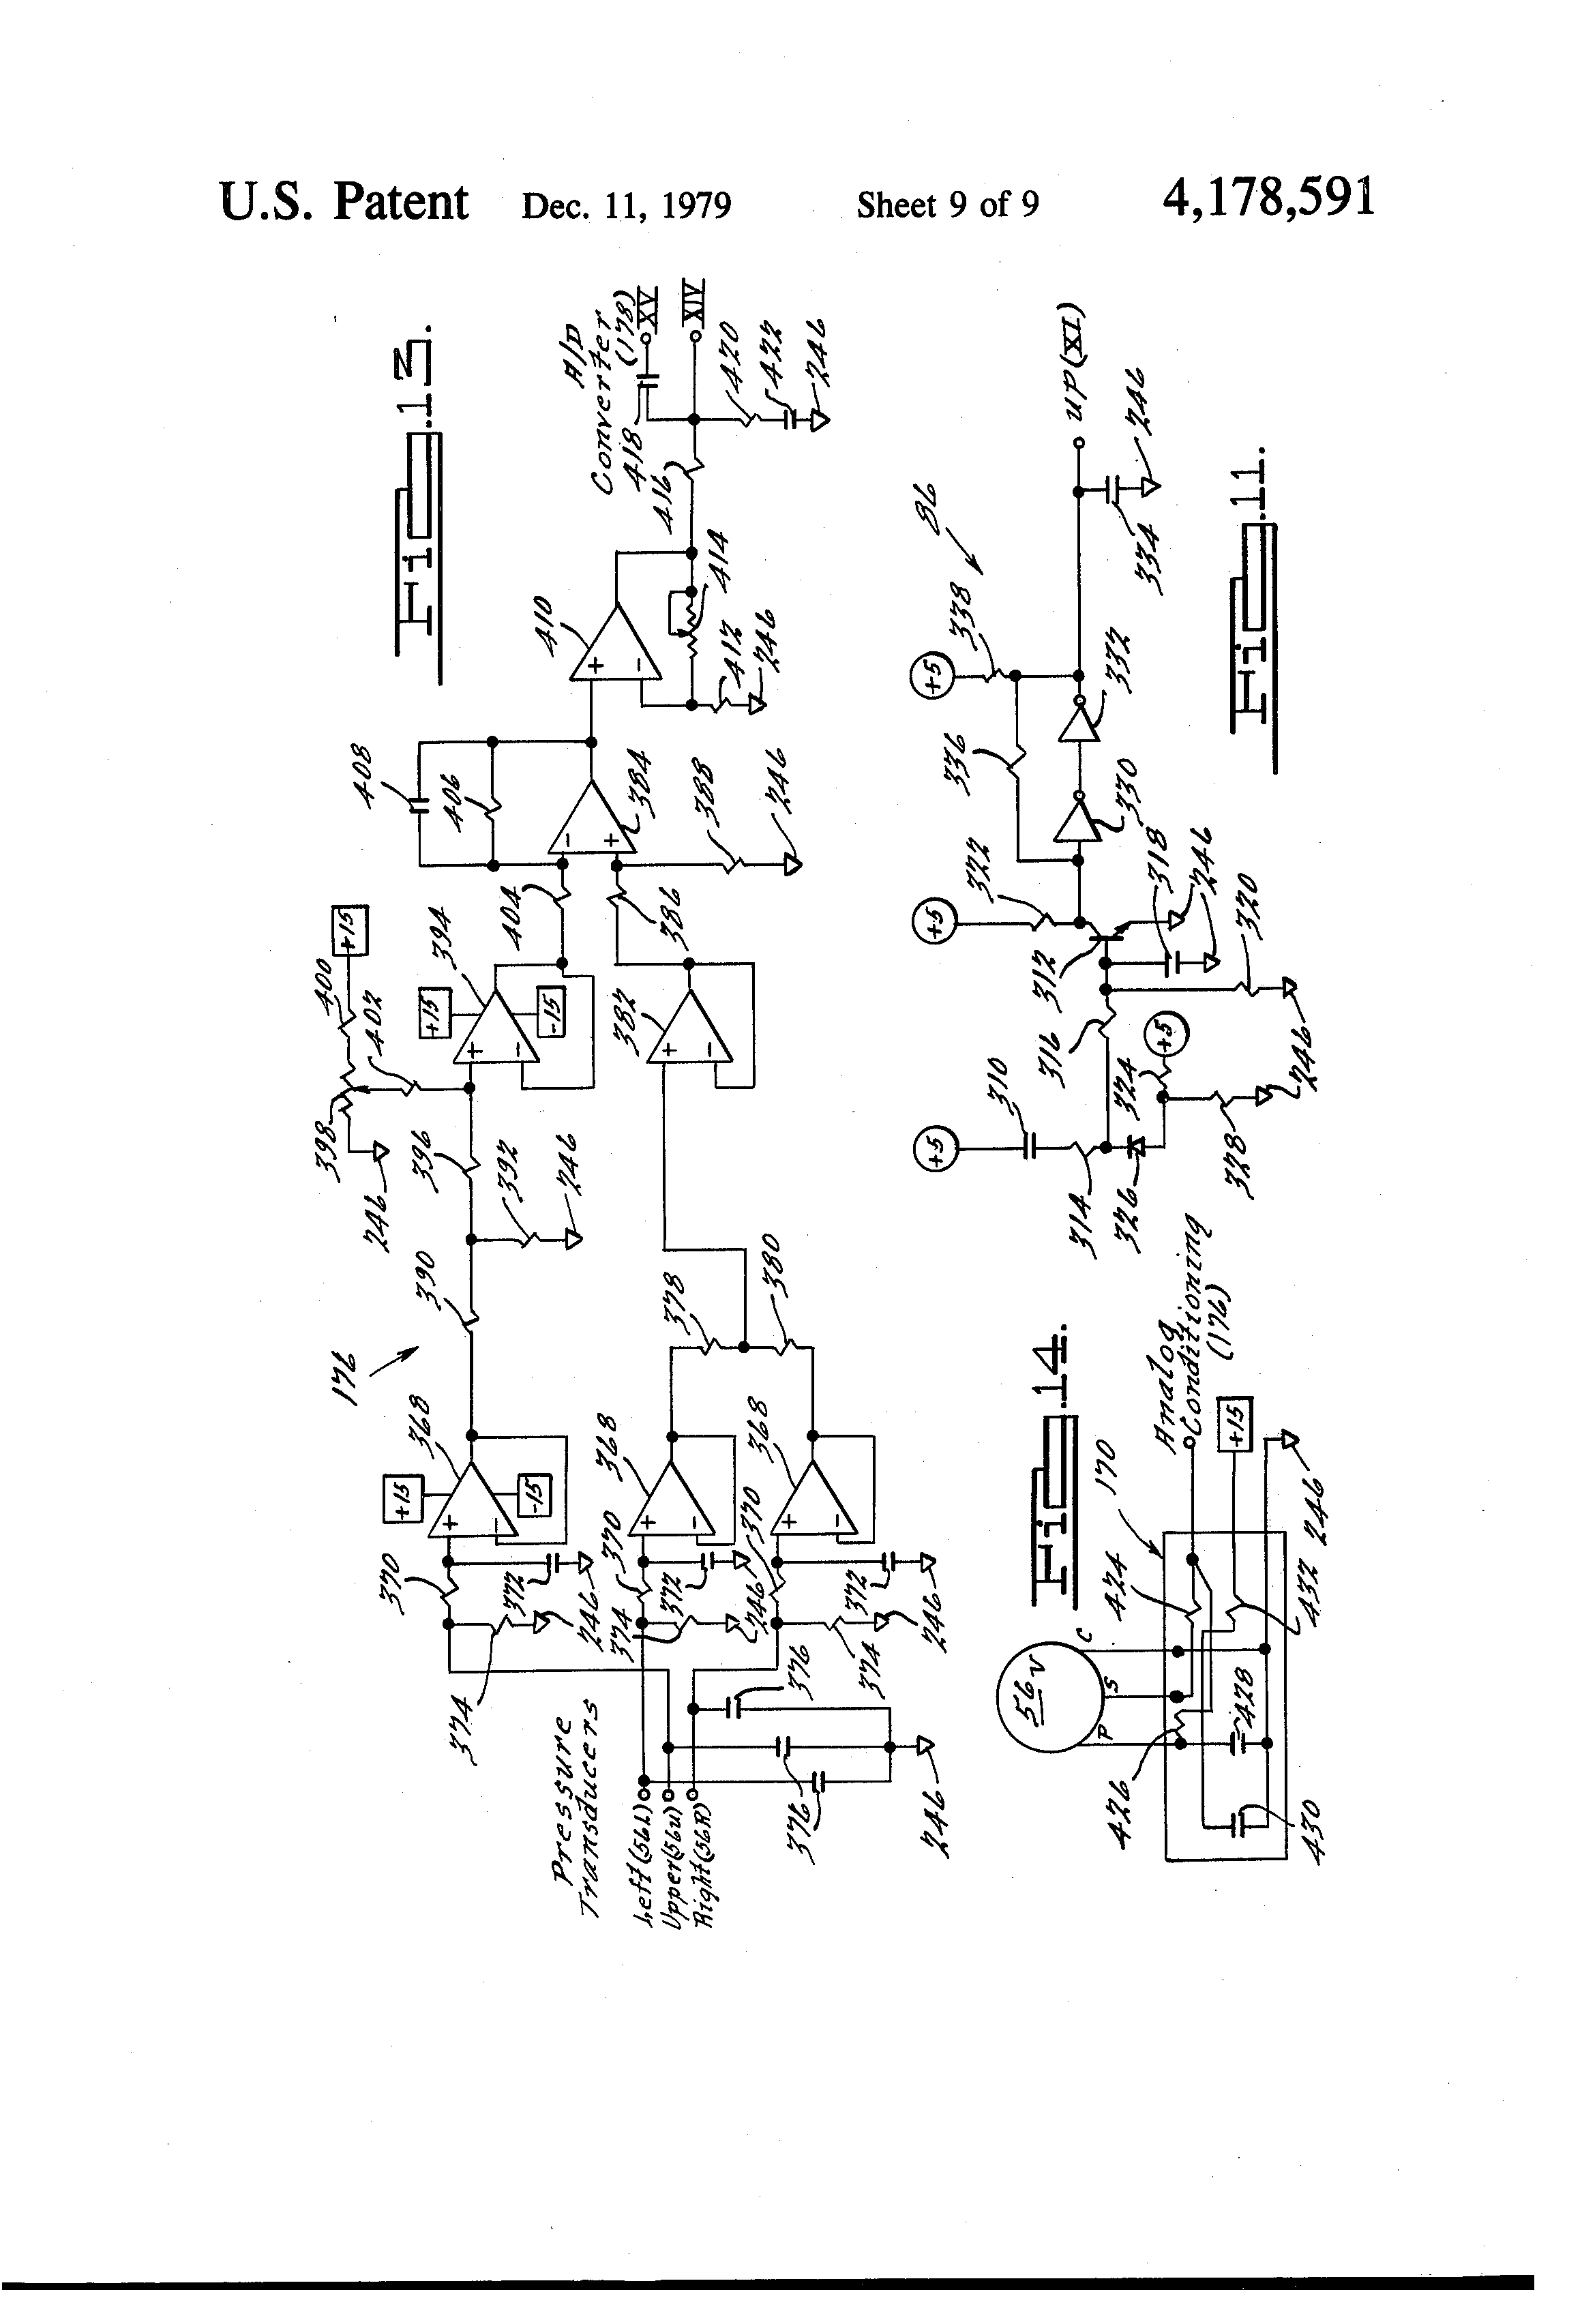 shaw box hoist wiring diagram 29 wiring diagram images wiring diagrams sewacar co Warn Winch Switch Diagram Yale Crane Wire Diagram